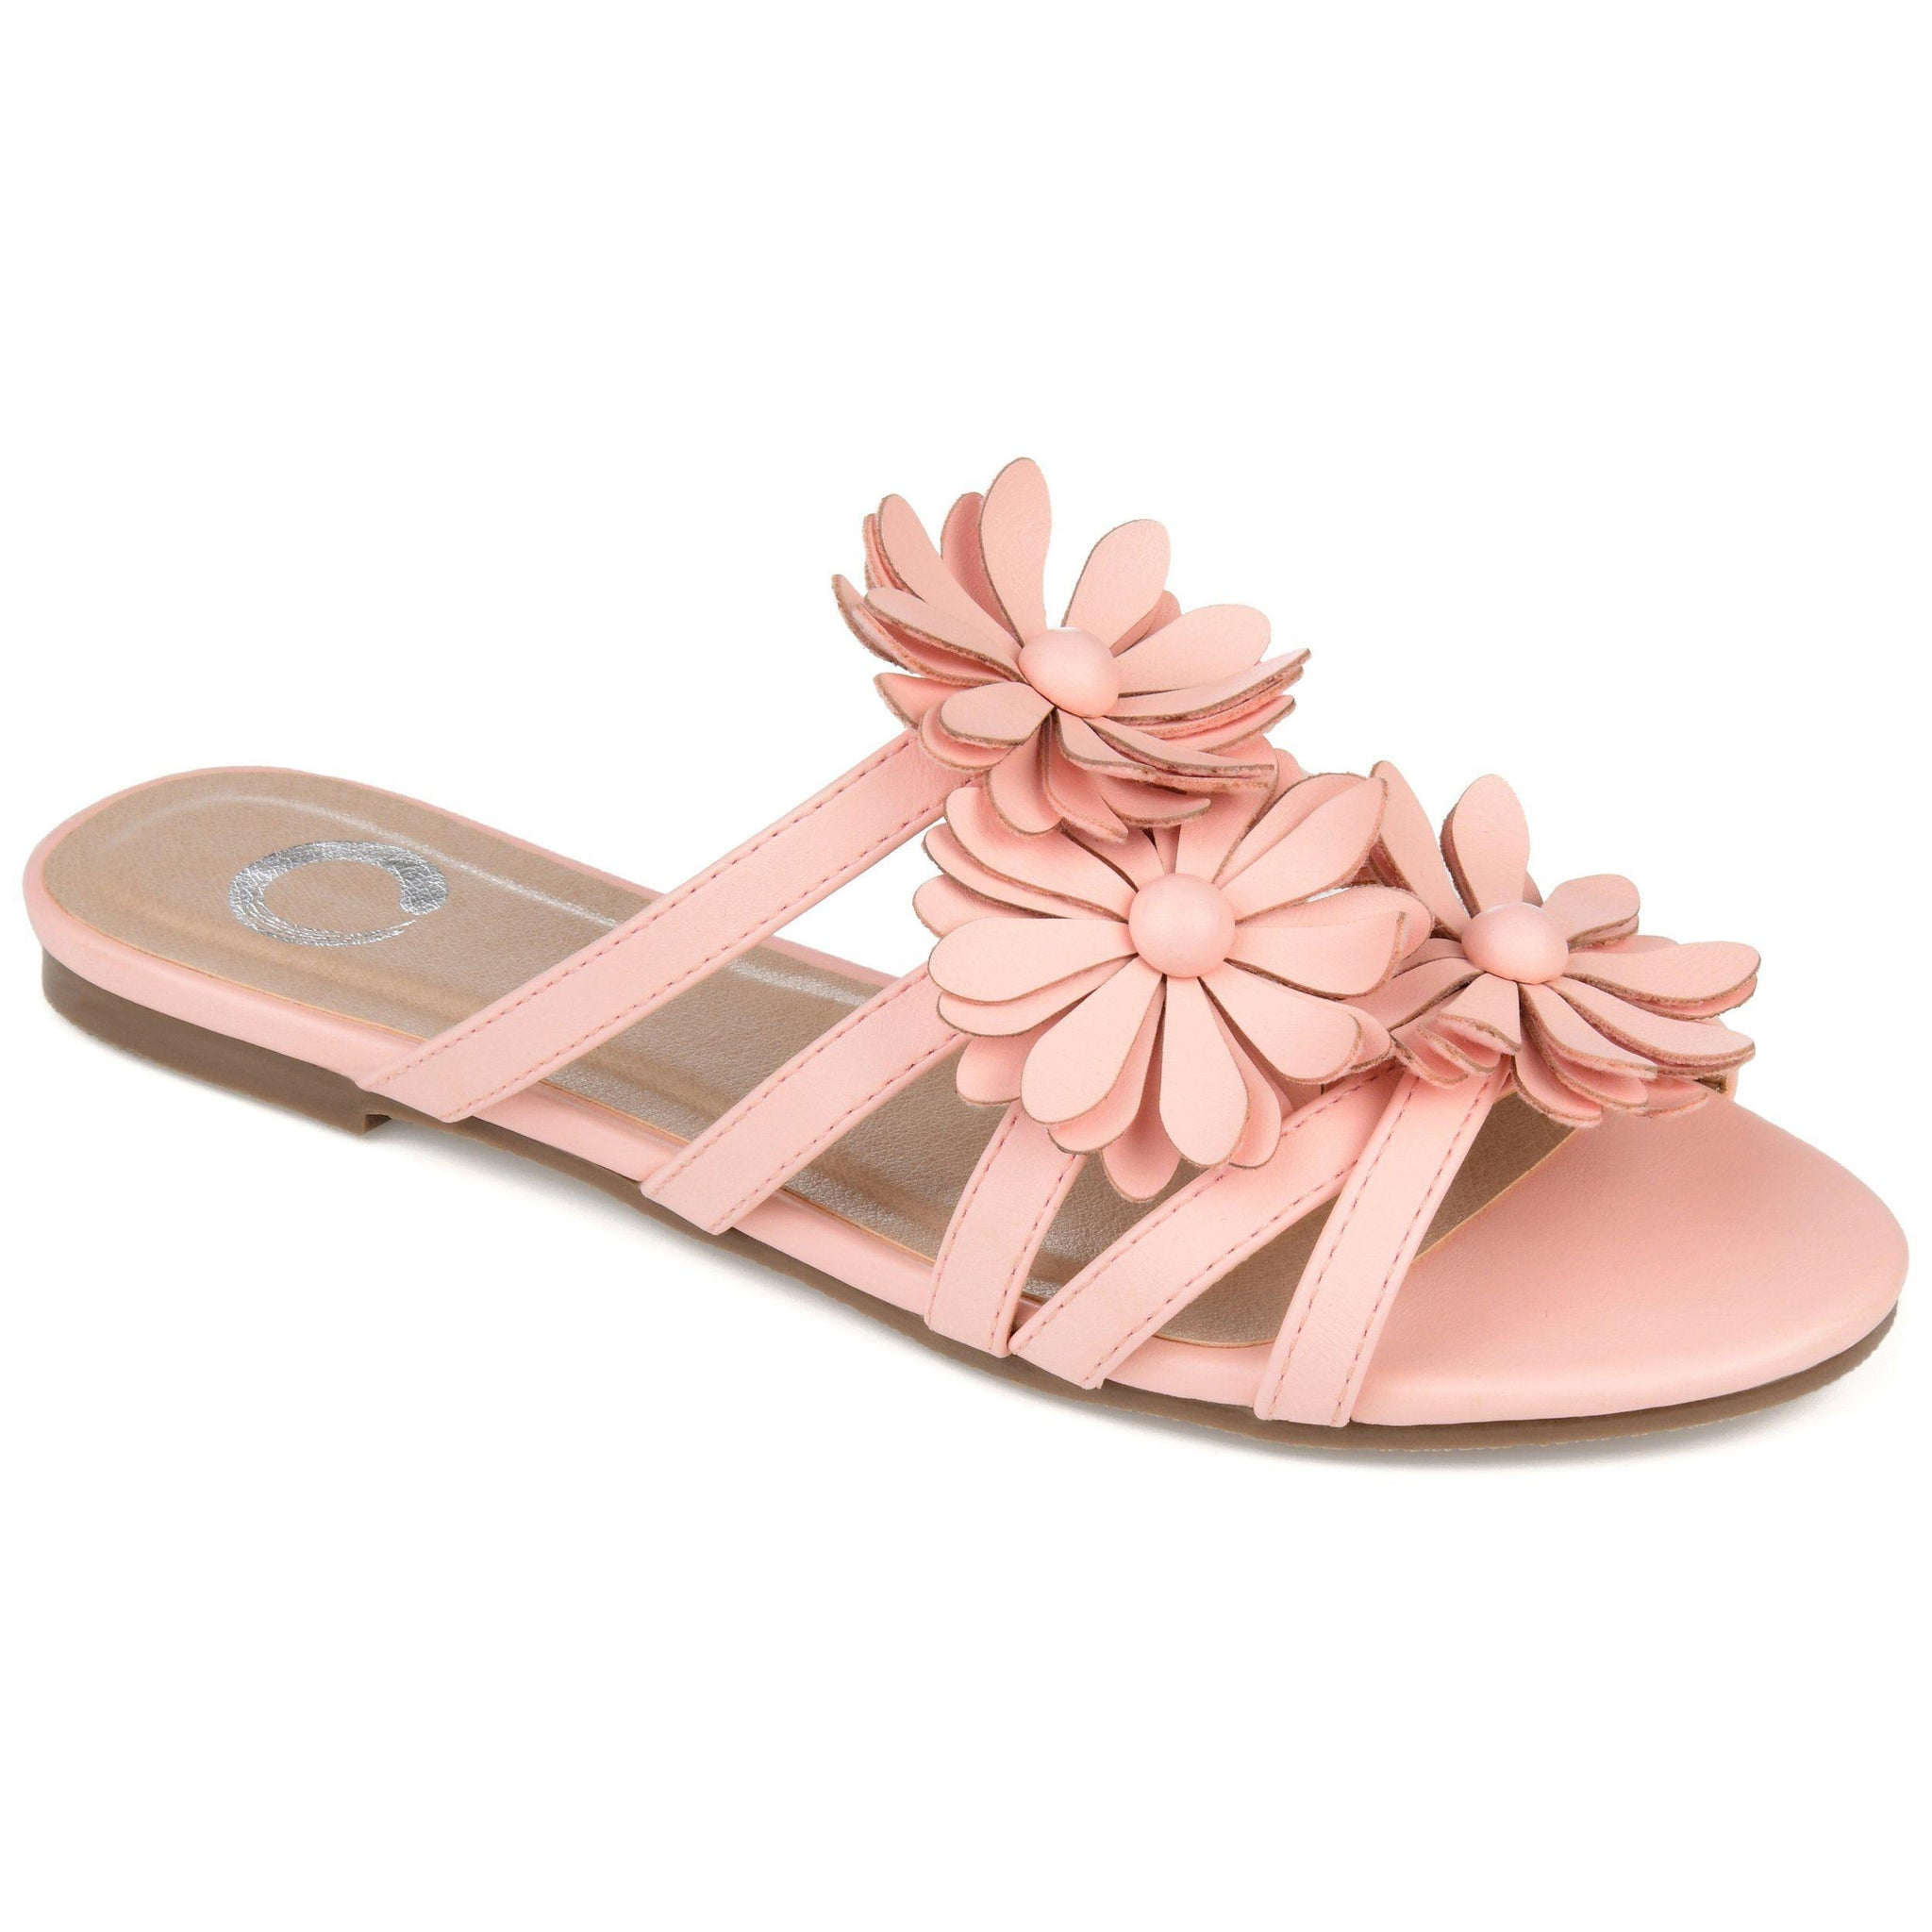 DOLLIAH SHOES Journee Collection Coral 7